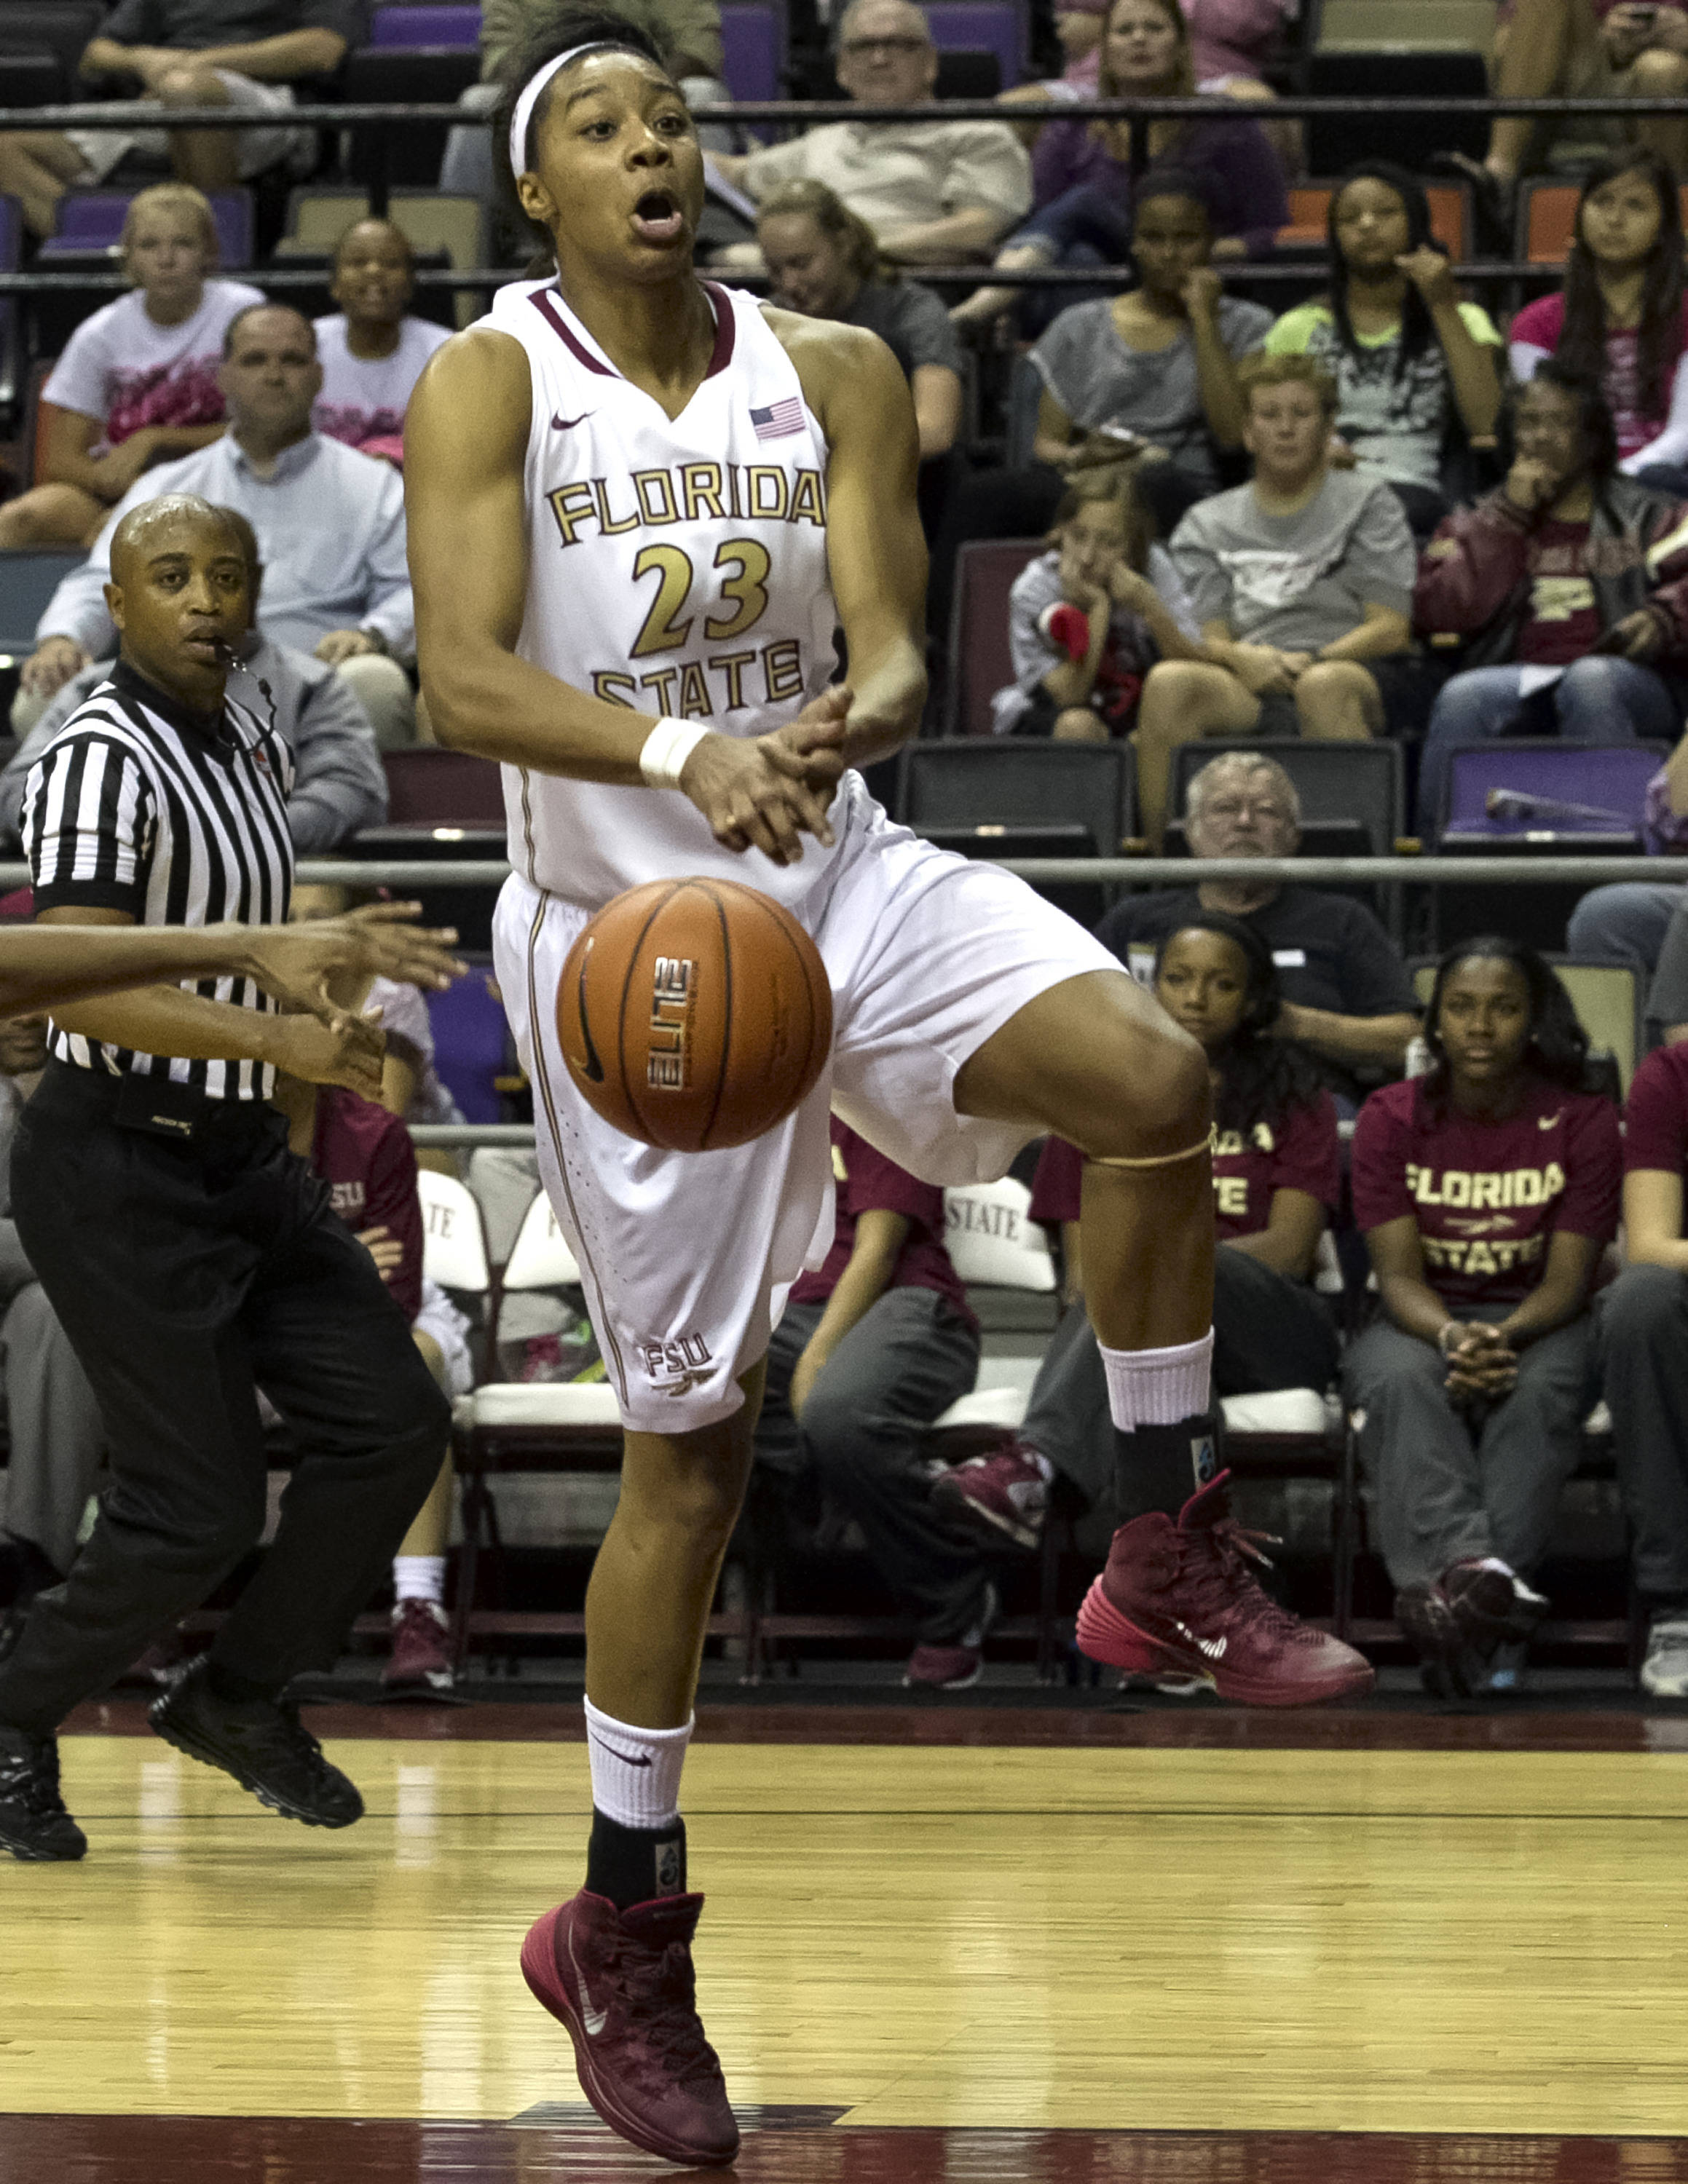 Ivey Slaughter (23), get the ball knocked out of her hands, FSU vs Jacksonville, 12-08-13,  (Photo by Steve Musco)